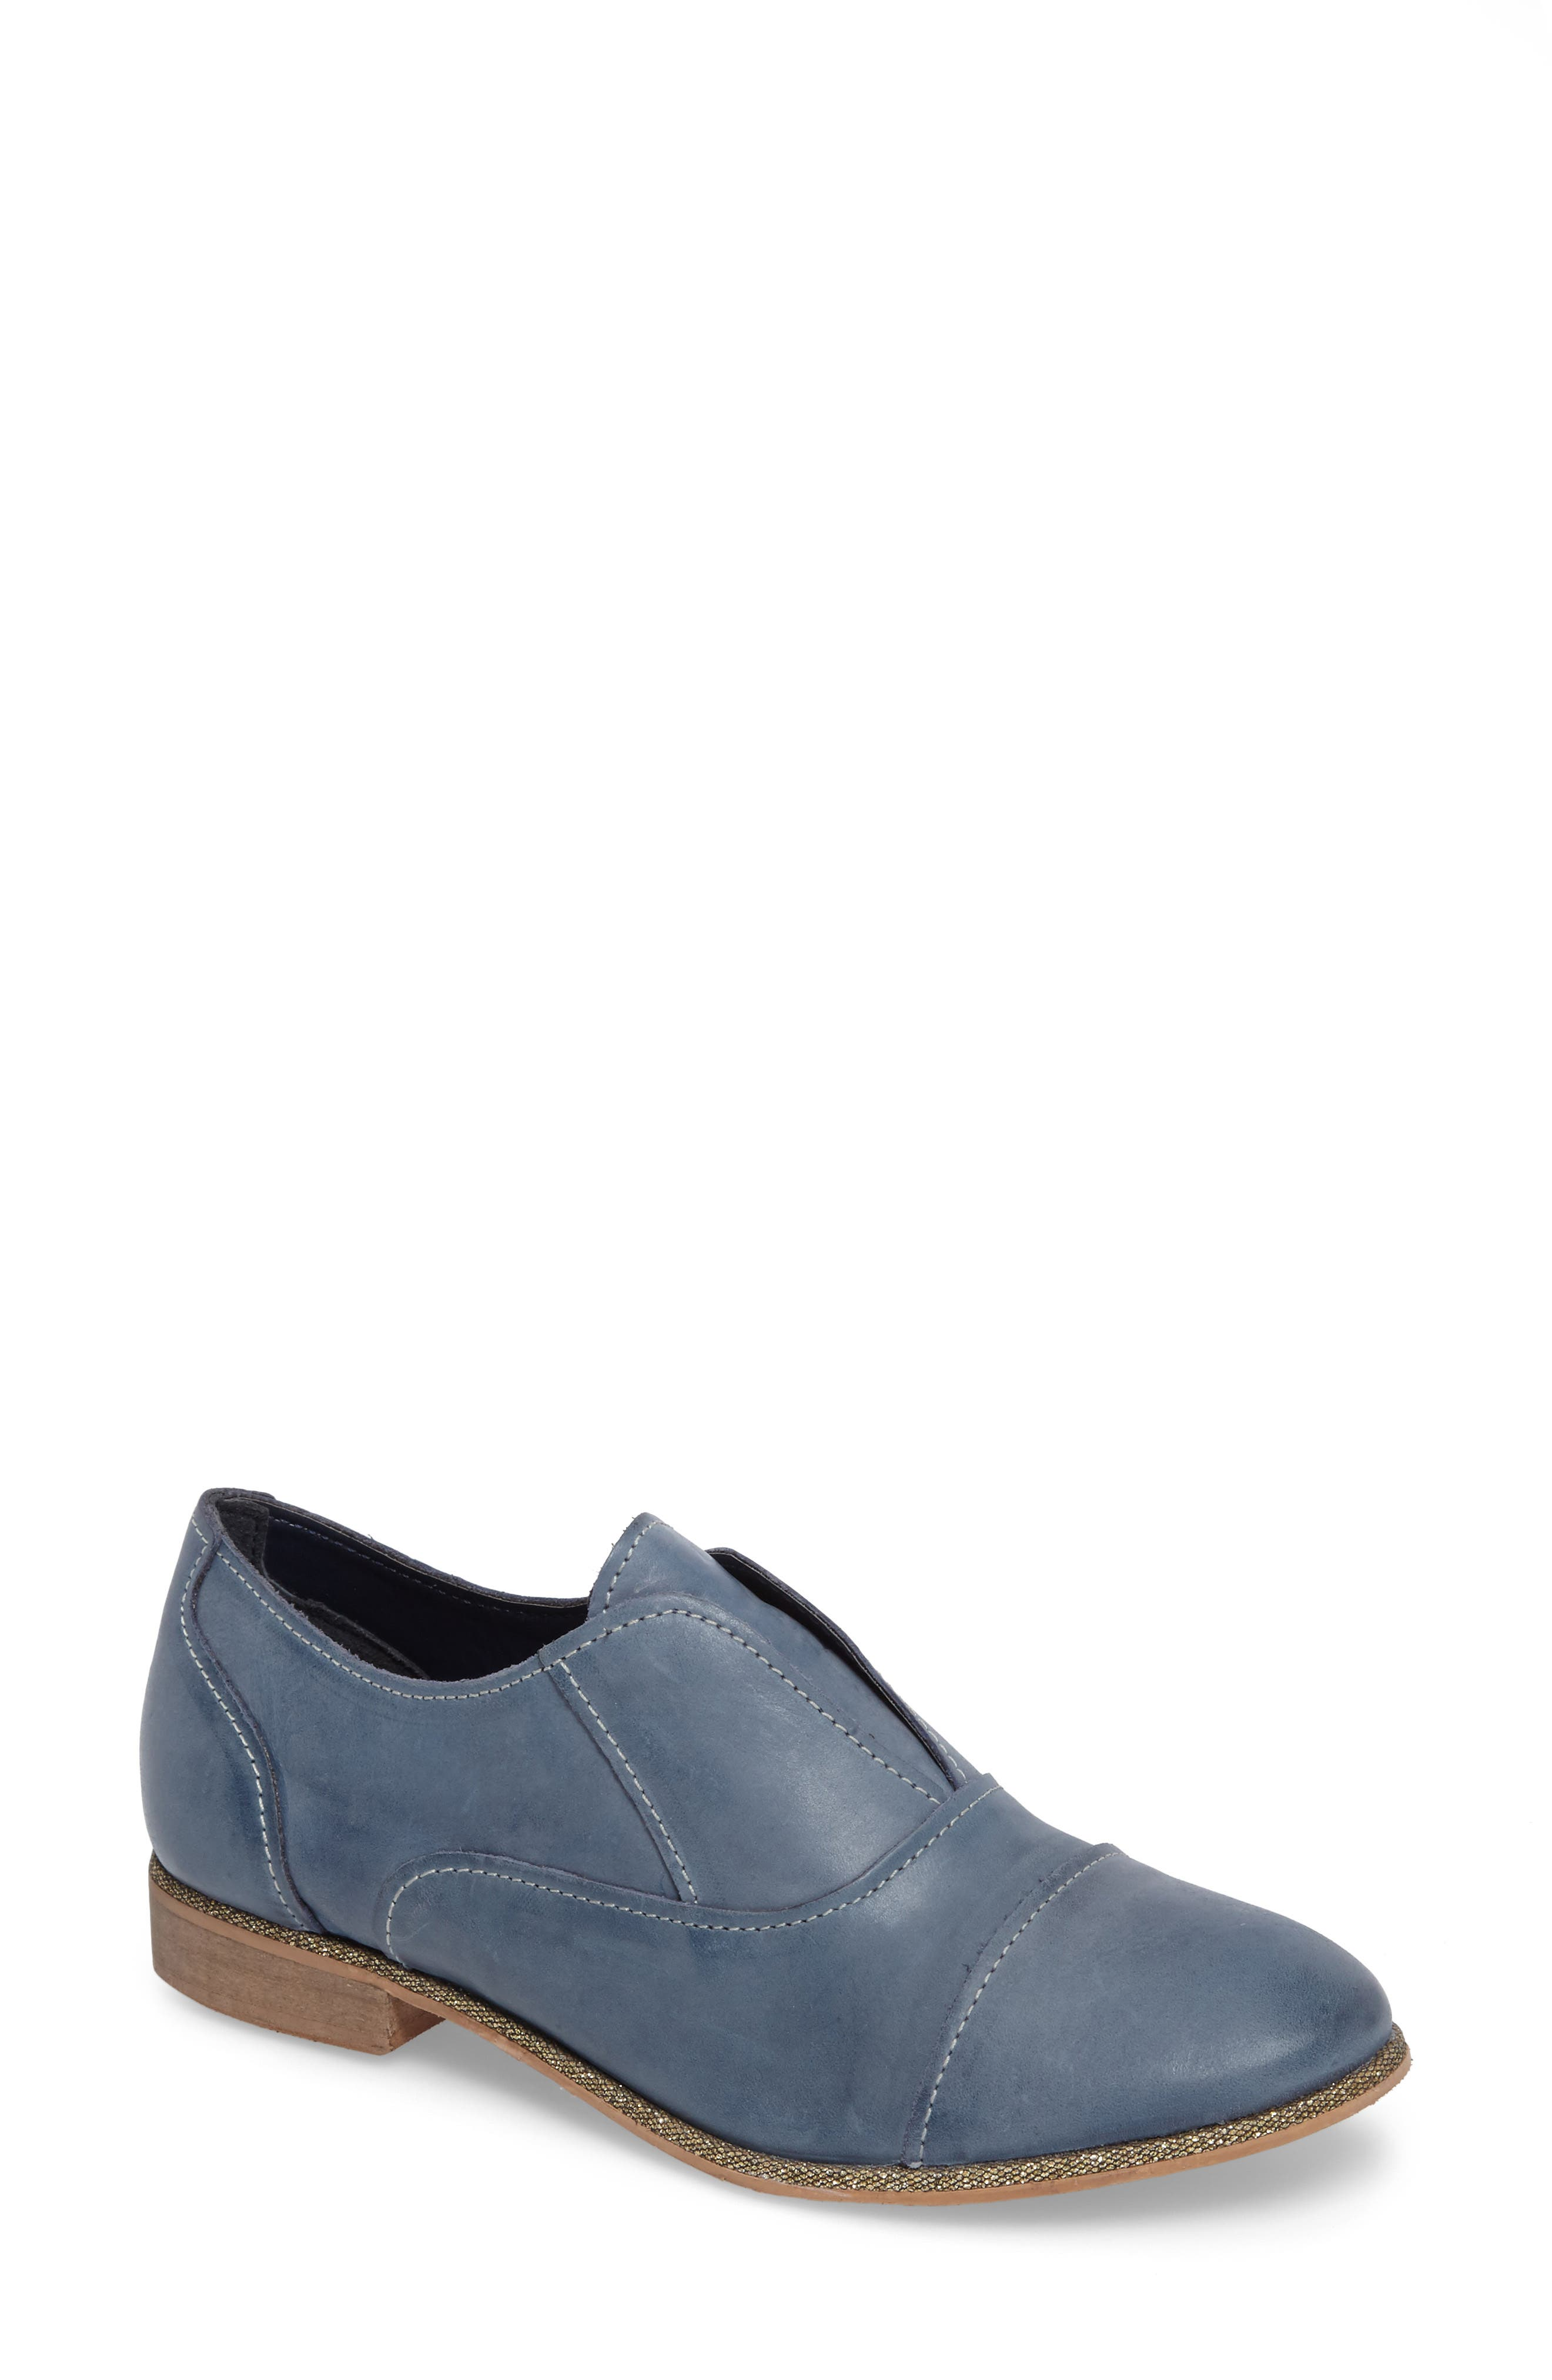 Slip Knot Loafer,                             Main thumbnail 1, color,                             Blue Leather